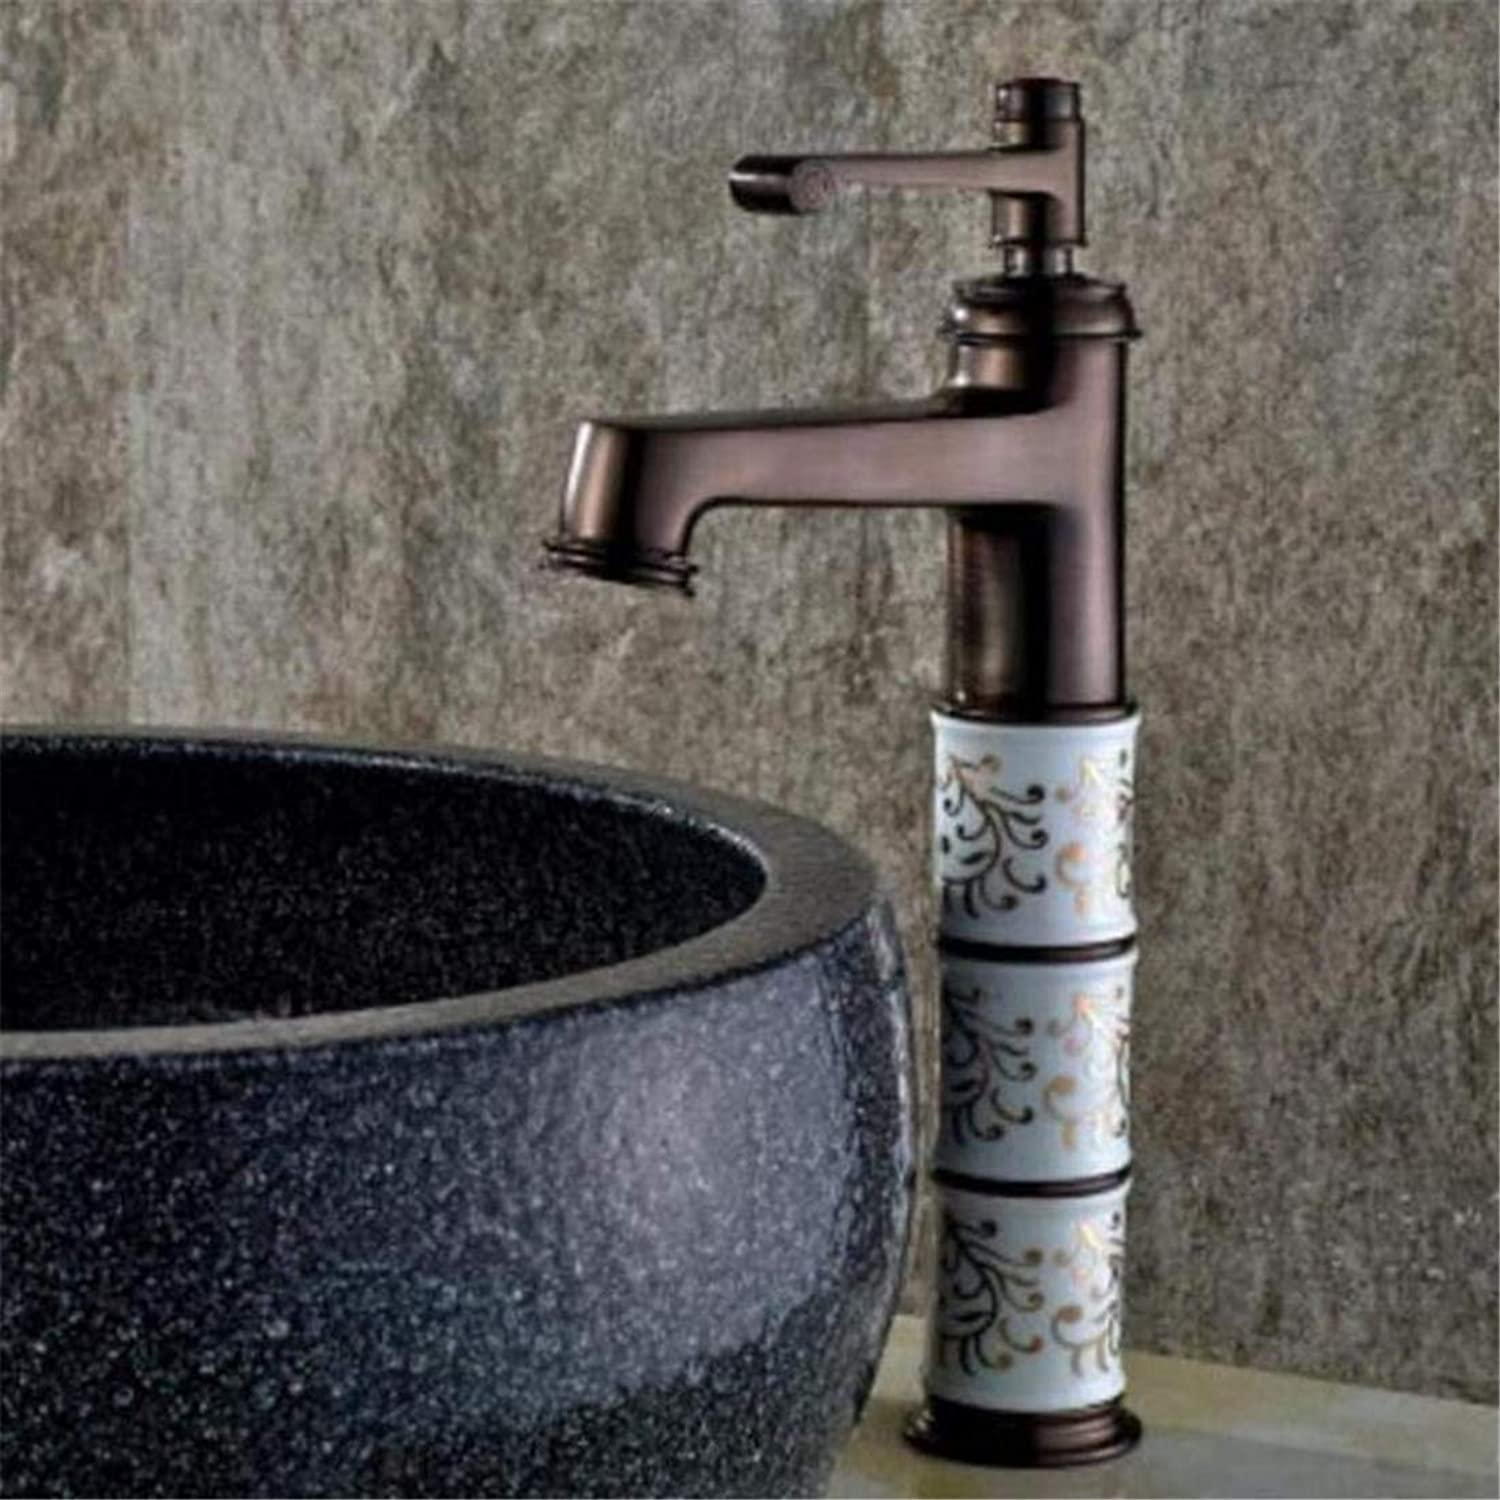 Faucet Luxury Plated Modern Faucet Faucet Mixer Antique Brass Faucet Hot and Cold Basin Mixer Oil Rubbed Bronze Bathroom Sink Mixer Tap